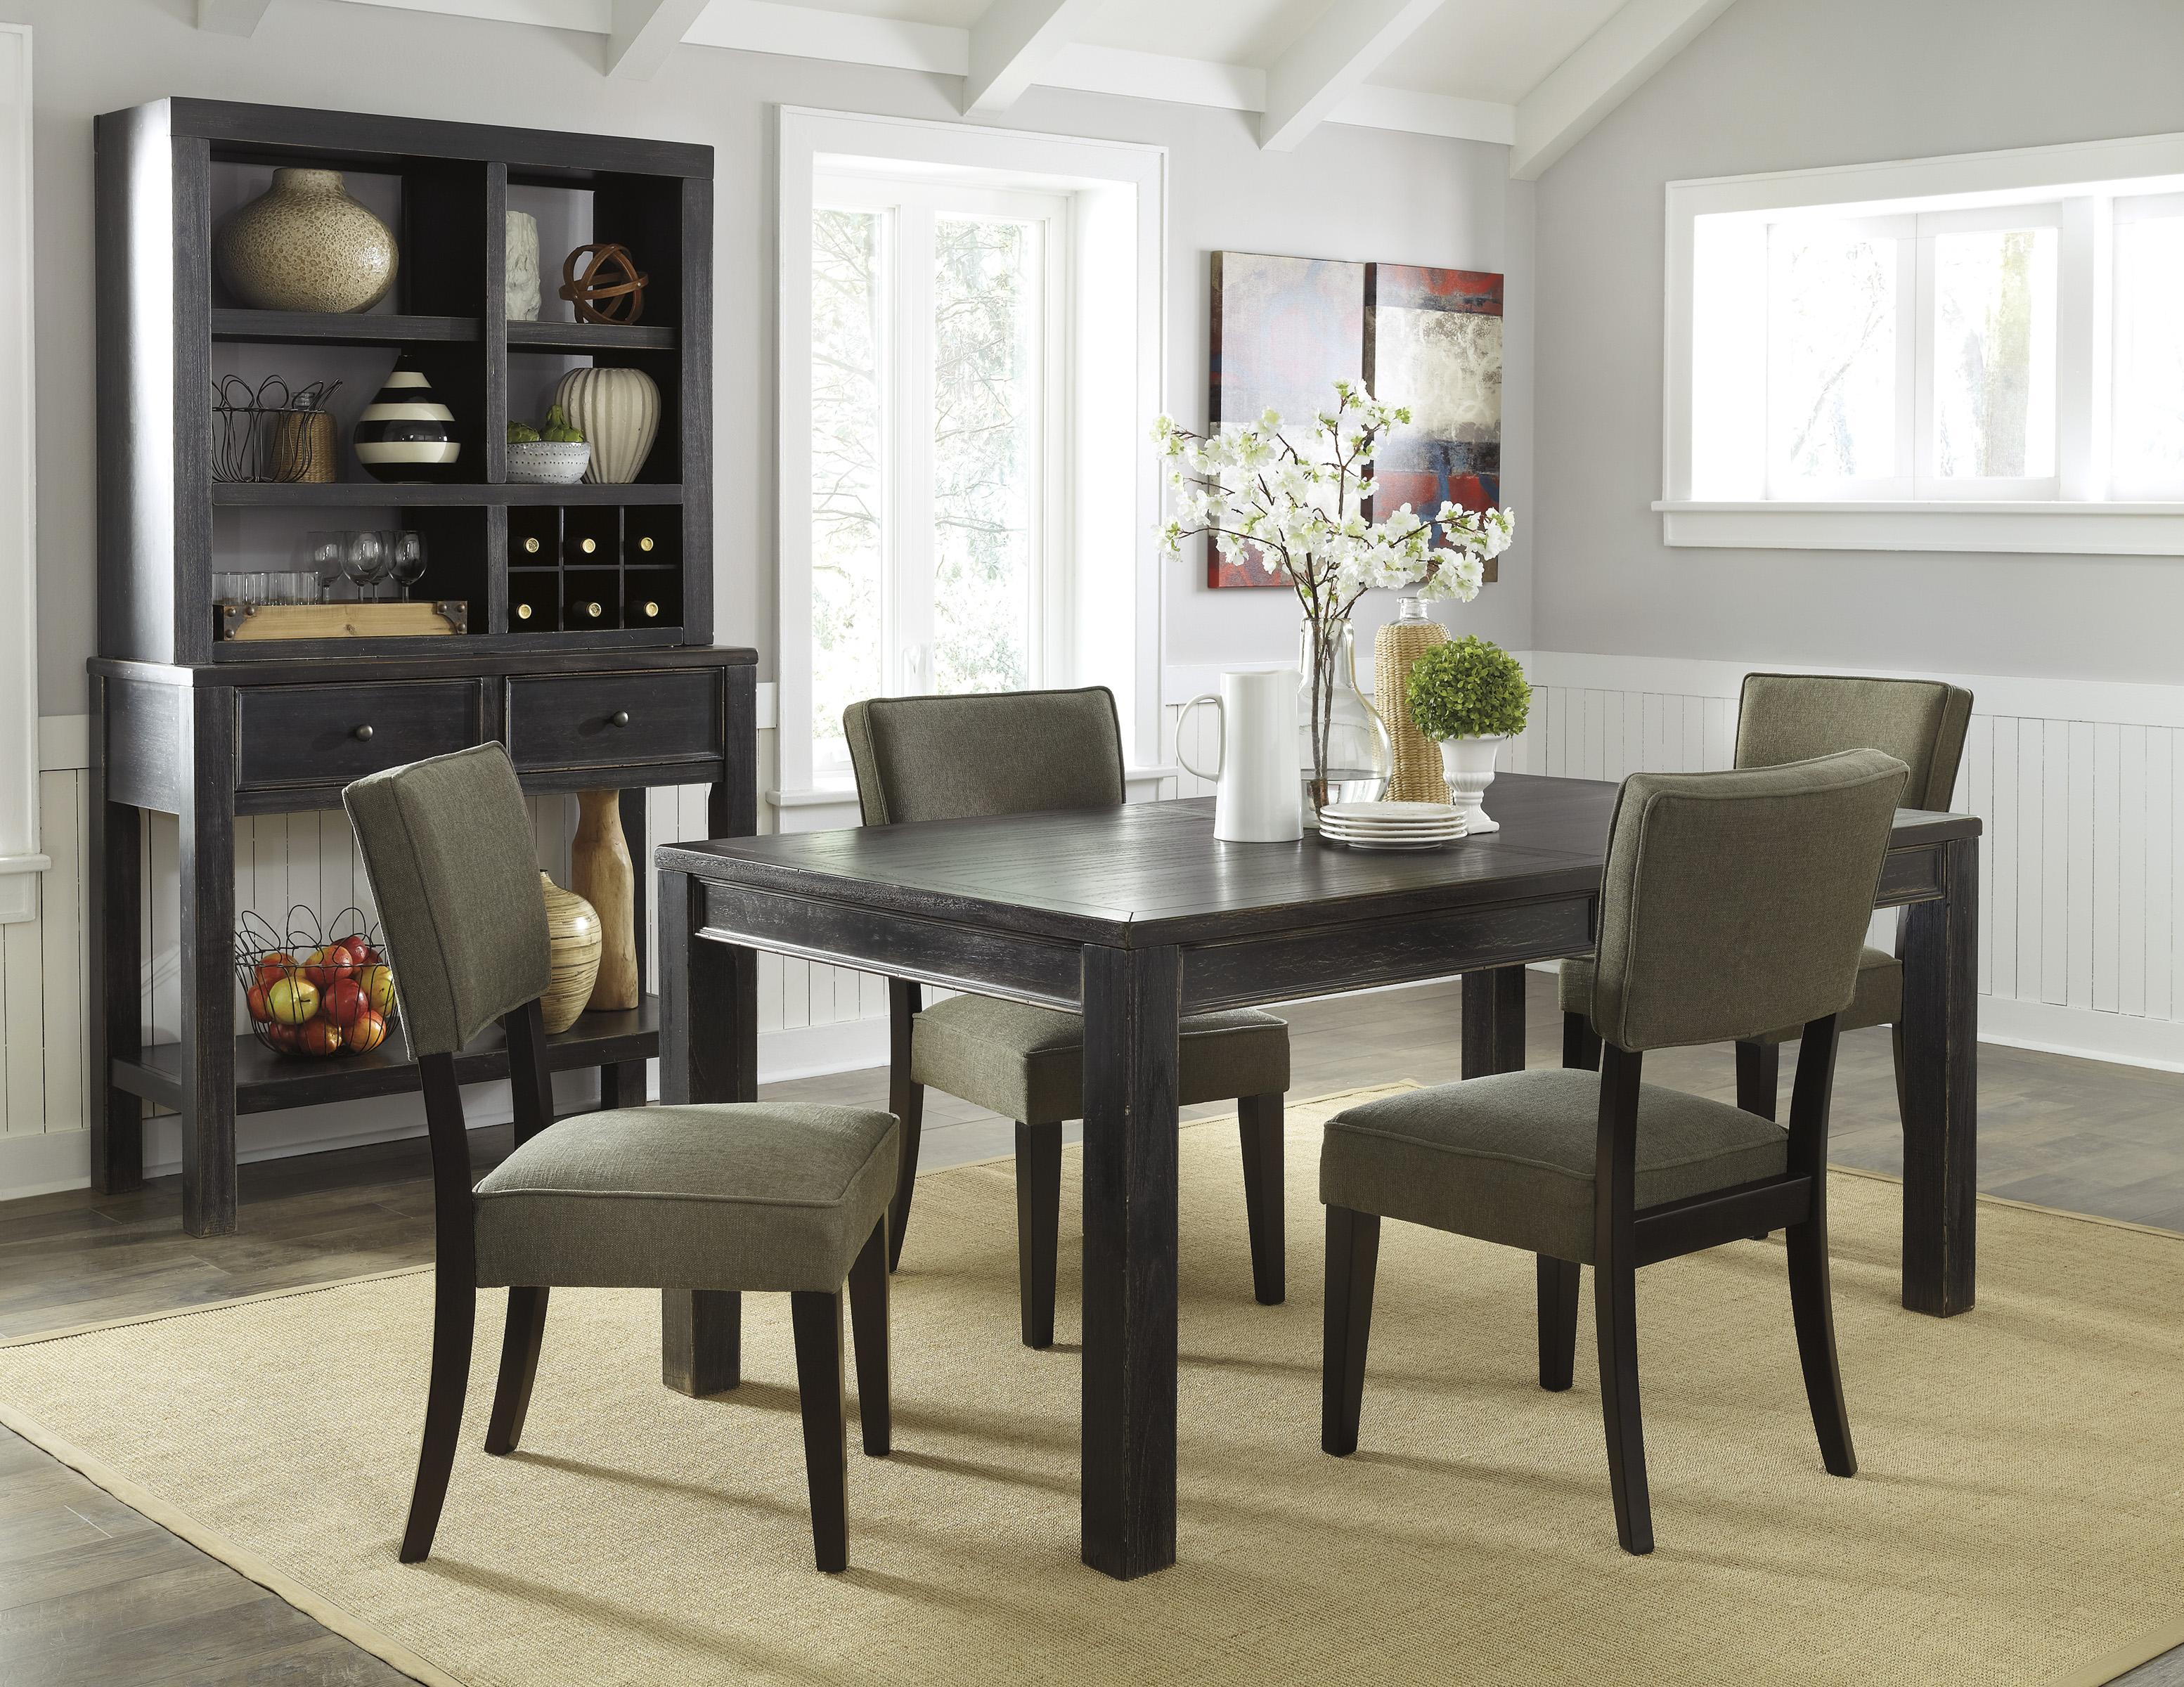 Signature Design by Ashley Gavelston Casual Dining Room Group - Item Number: D532 Dining Room Group 2